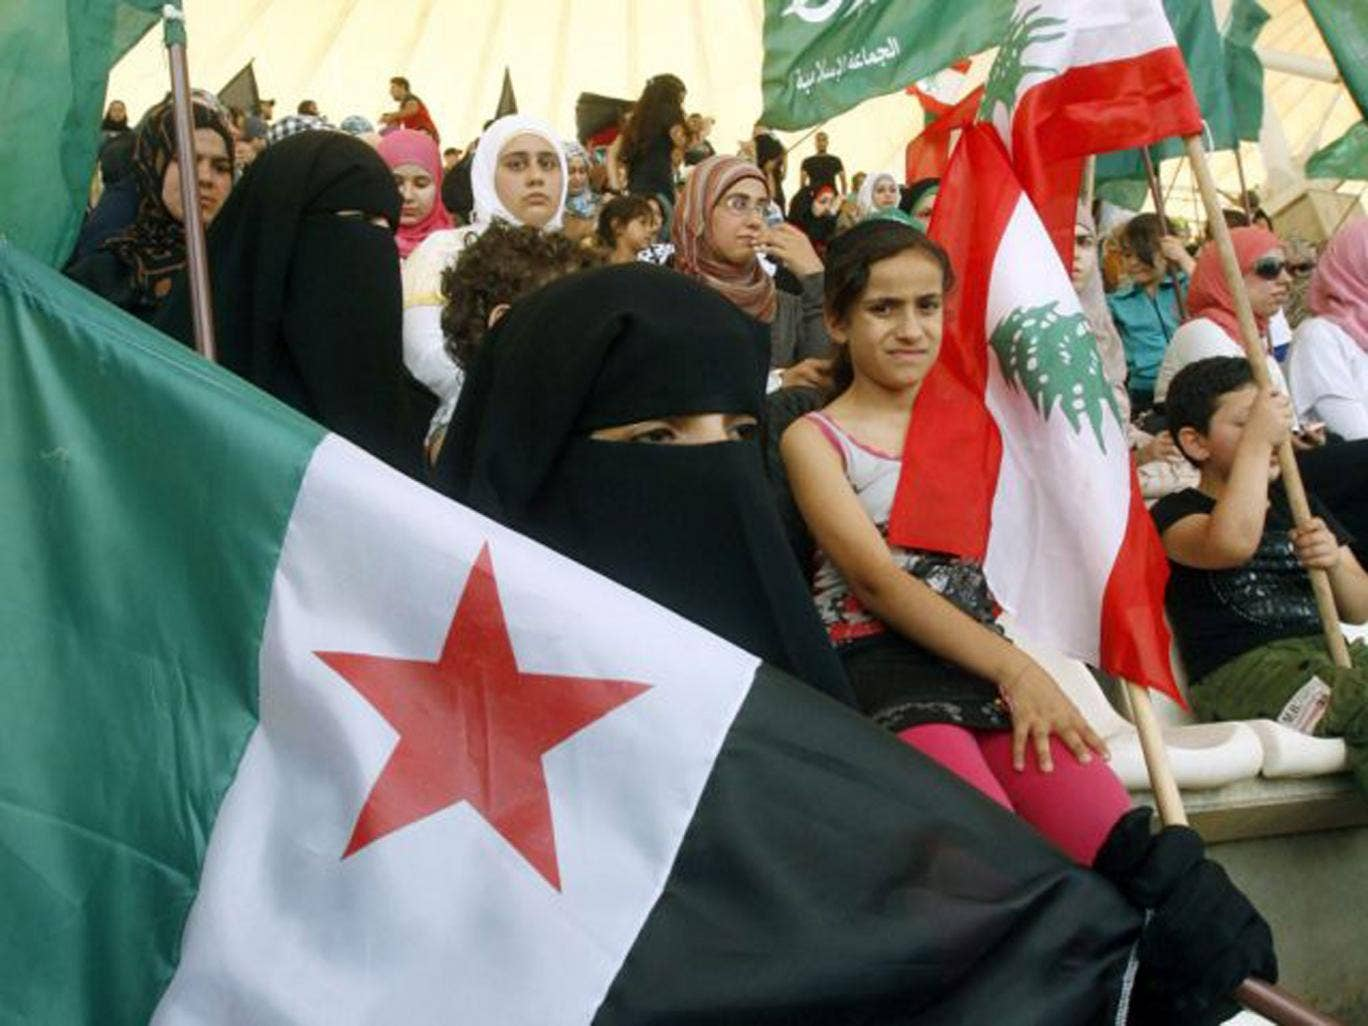 Syrians and Lebanese protesters in Sidon on the same day